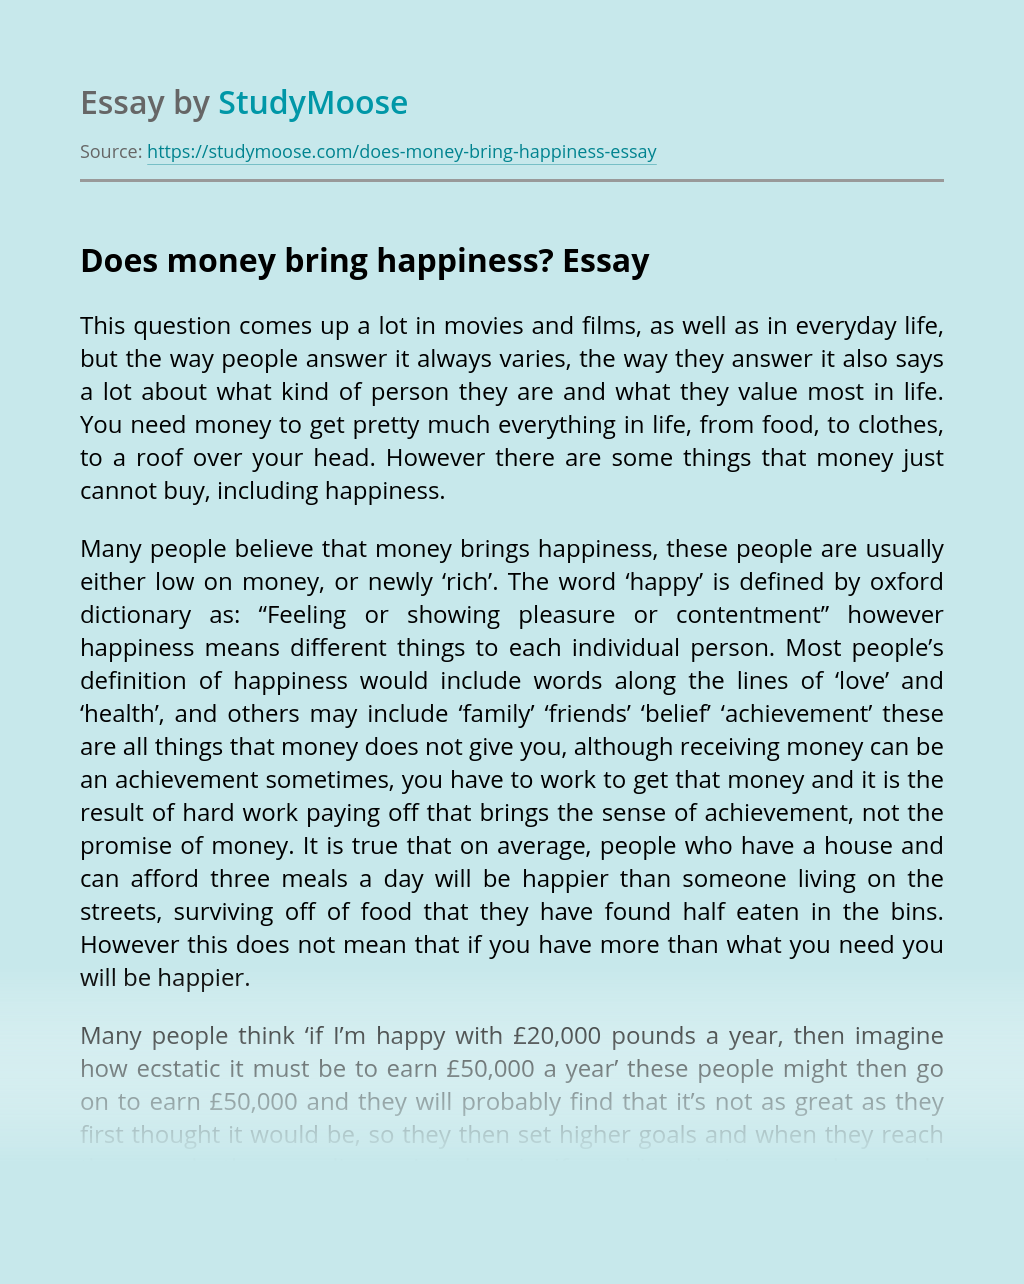 Does money bring happiness?